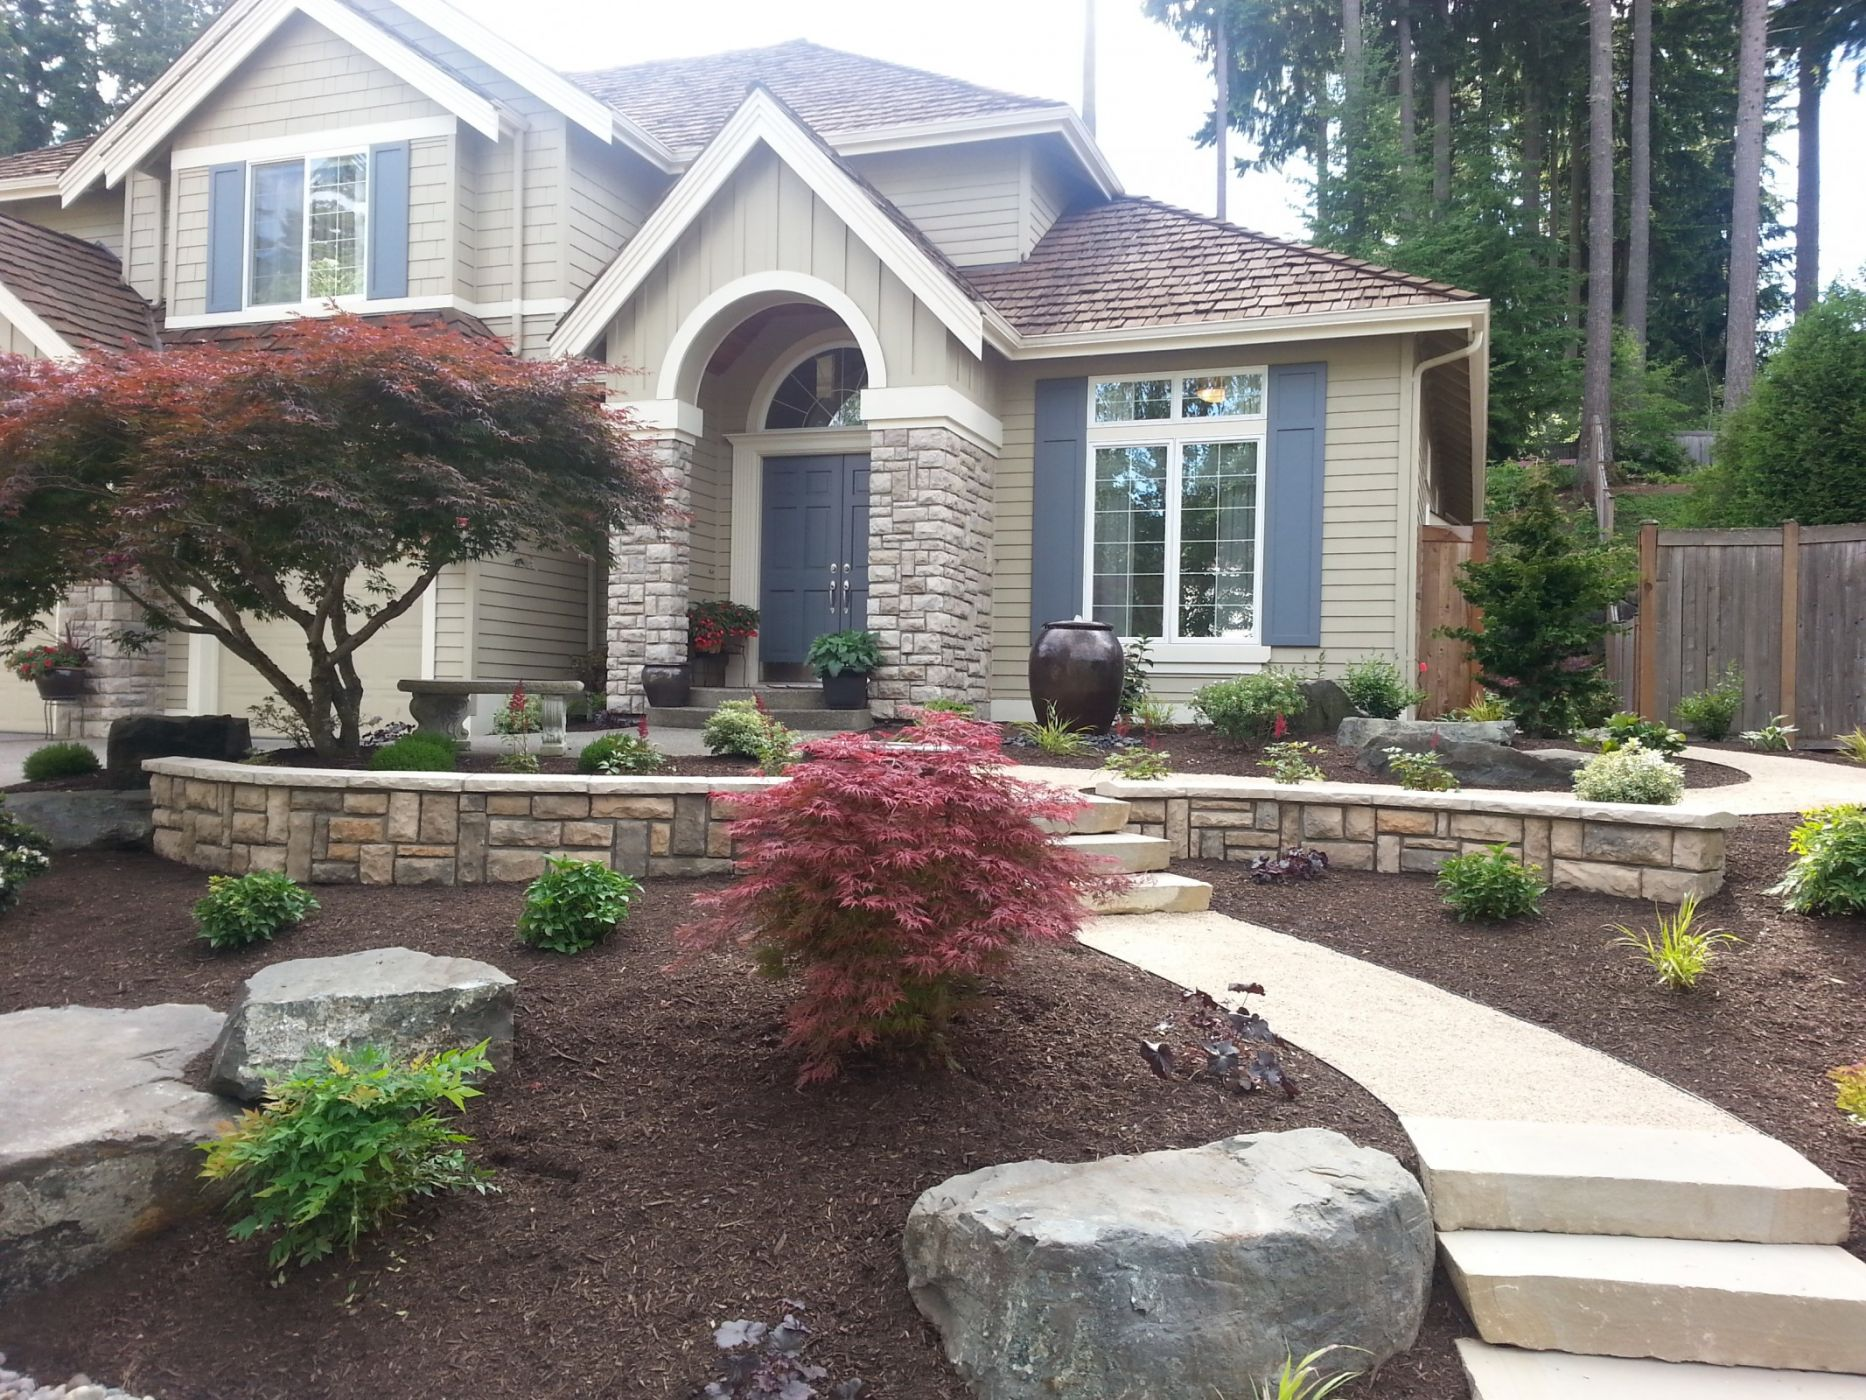 Janika landscaping ideas front yard illinois here for Home front garden ideas